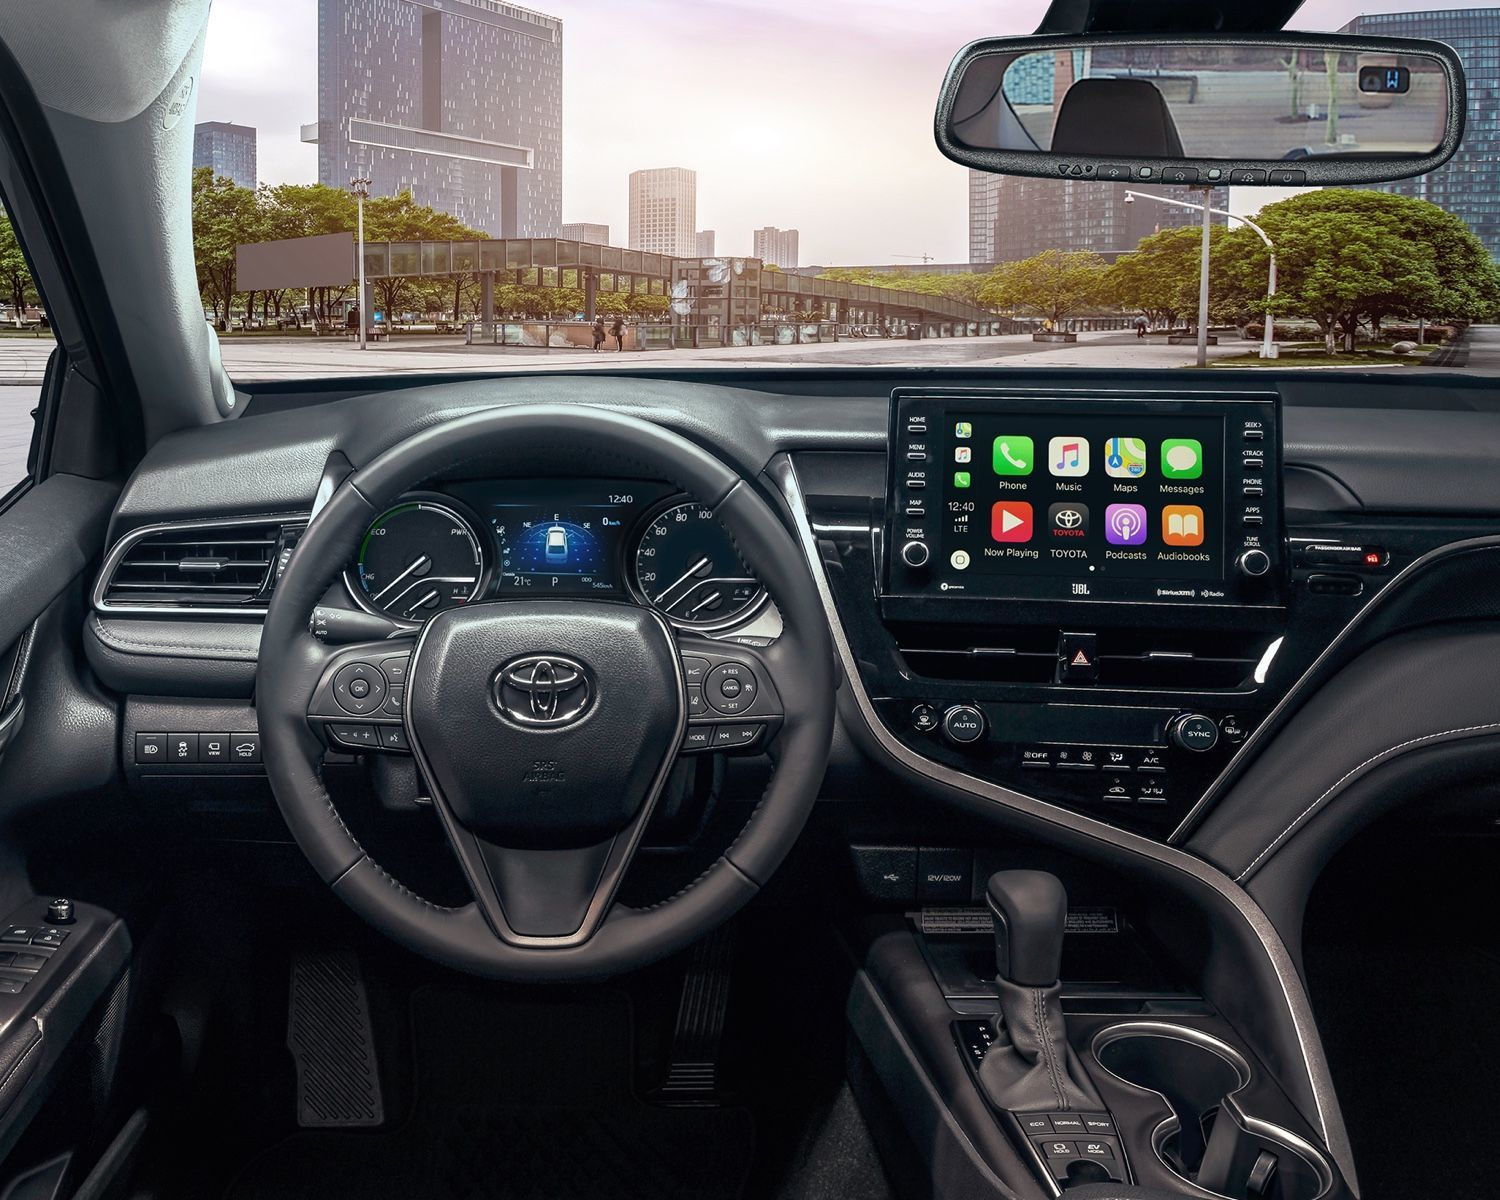 Camry Hybrid XSE shown with Black Sports Leather Interior